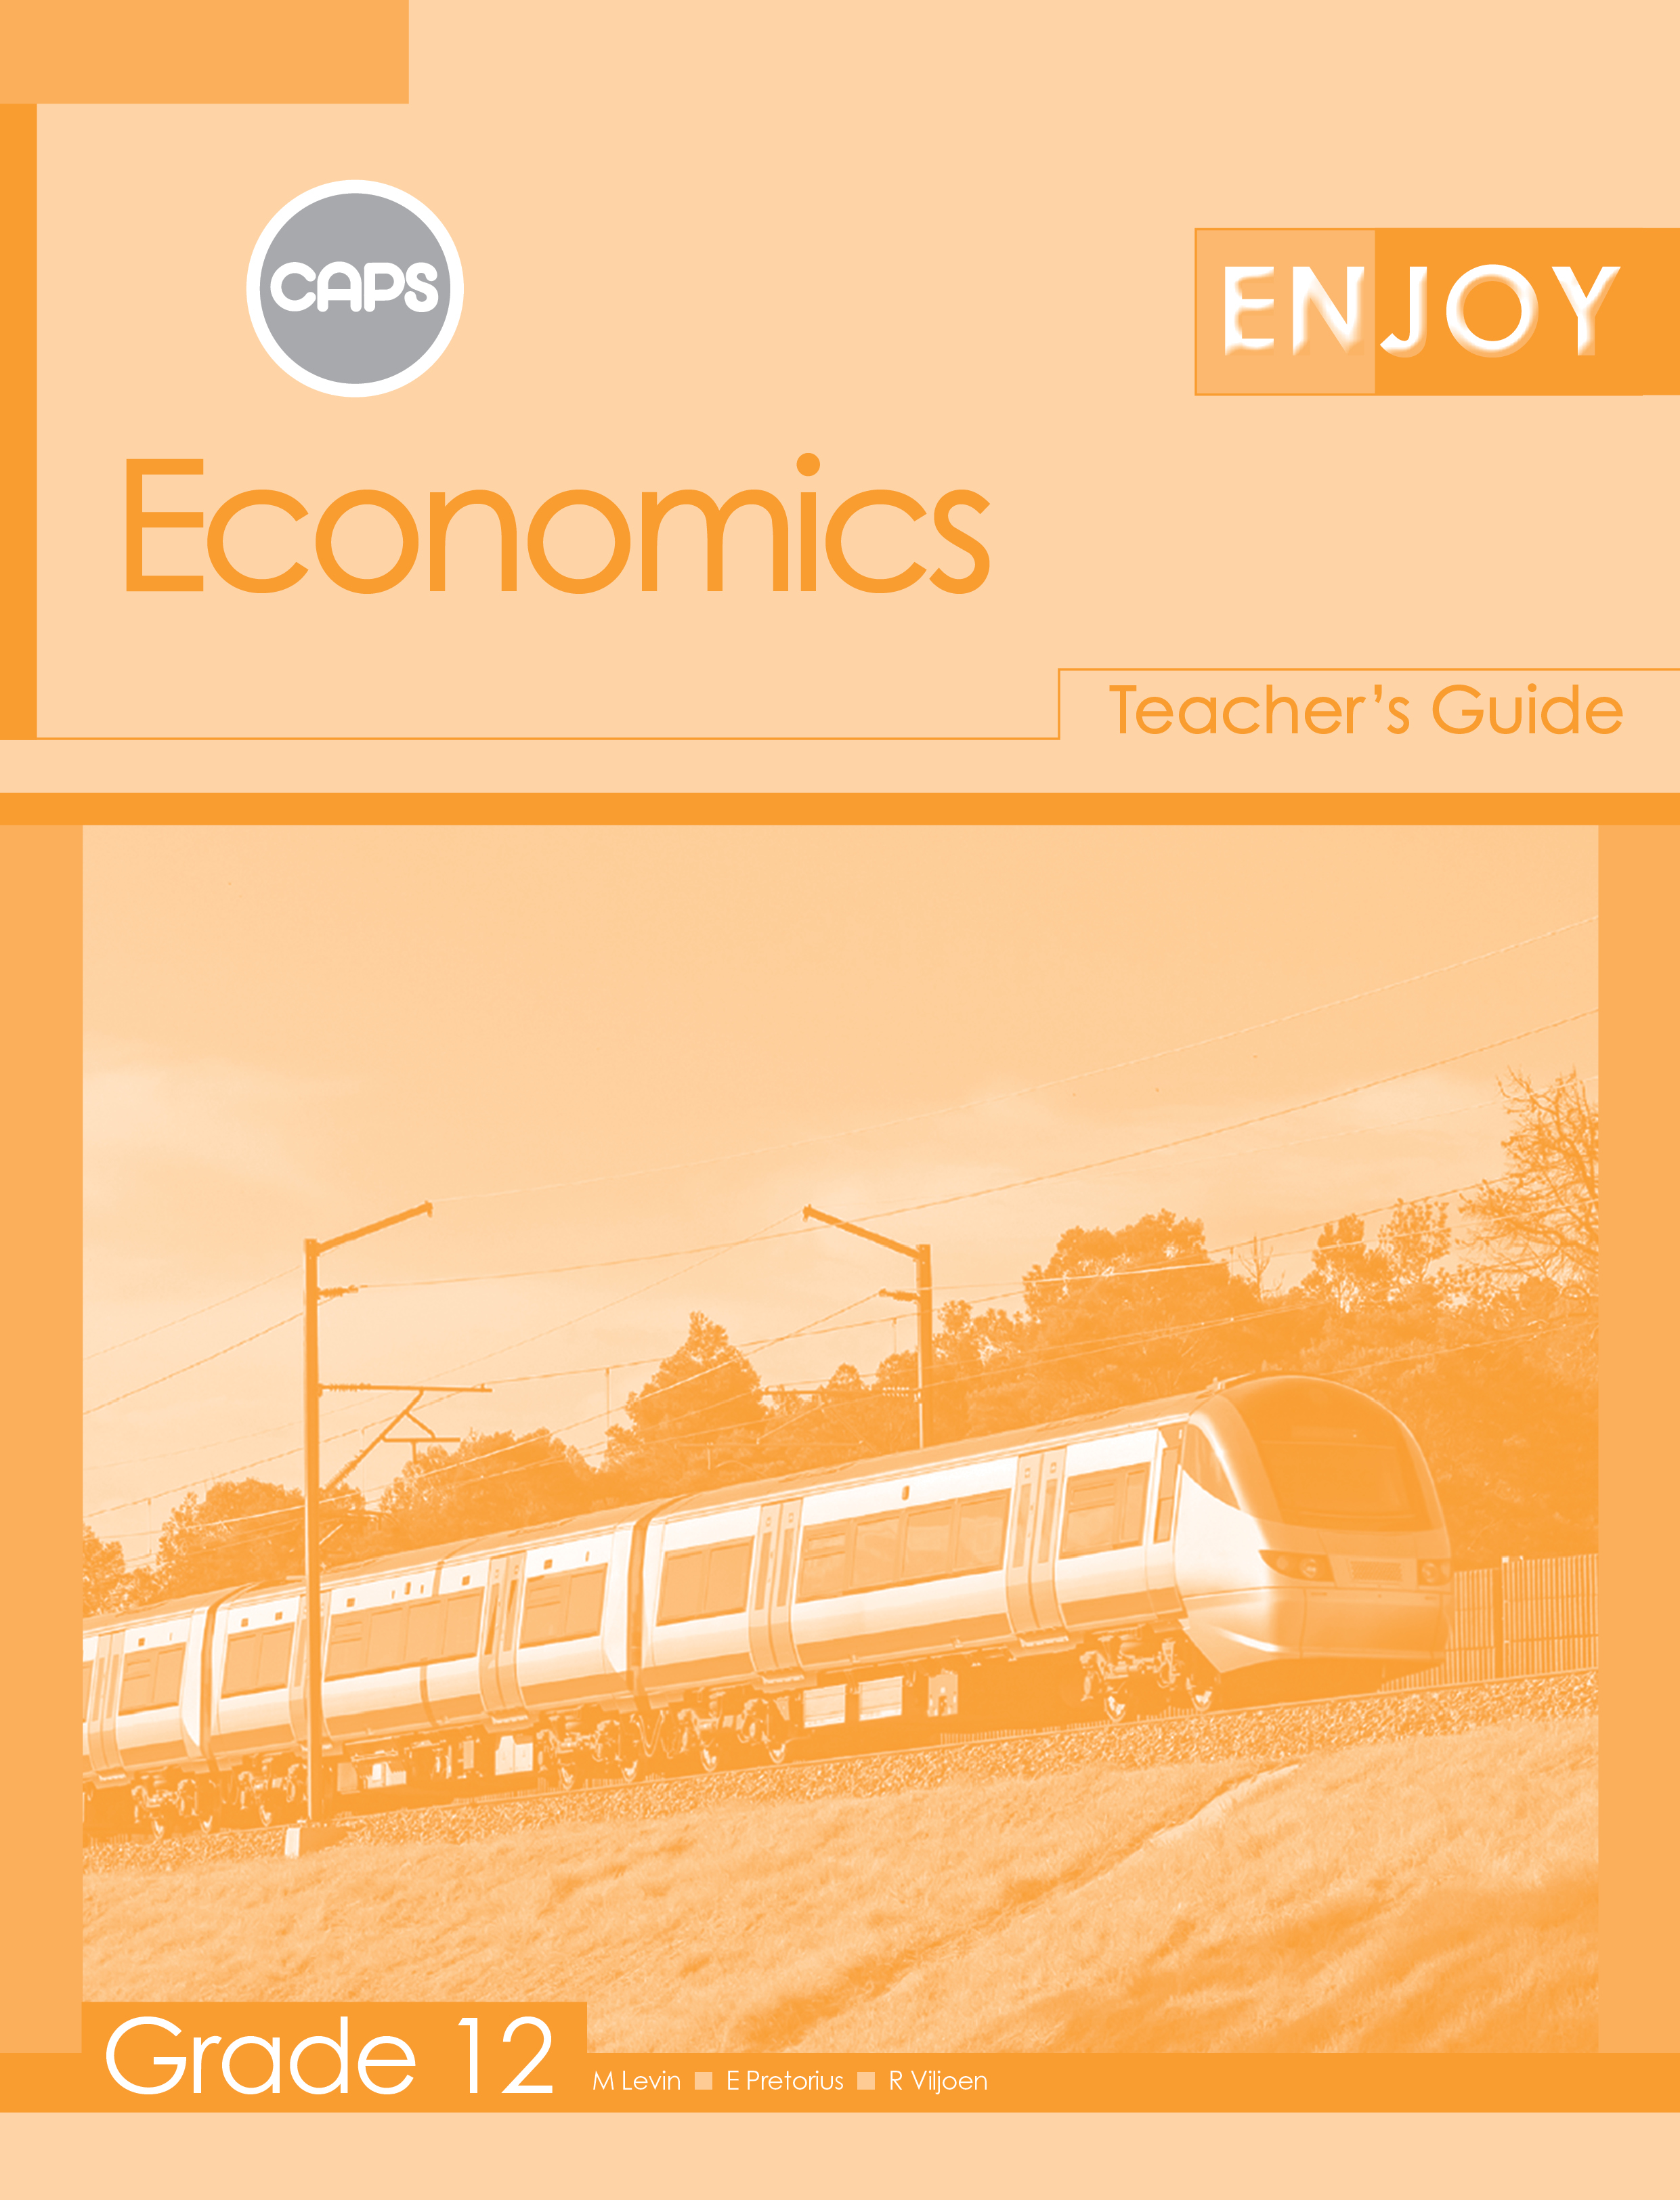 Enjoy Economics CAPS: Enjoy Economics: Grade 12: Teacher's Guide Gr 12: Teacher's Guide